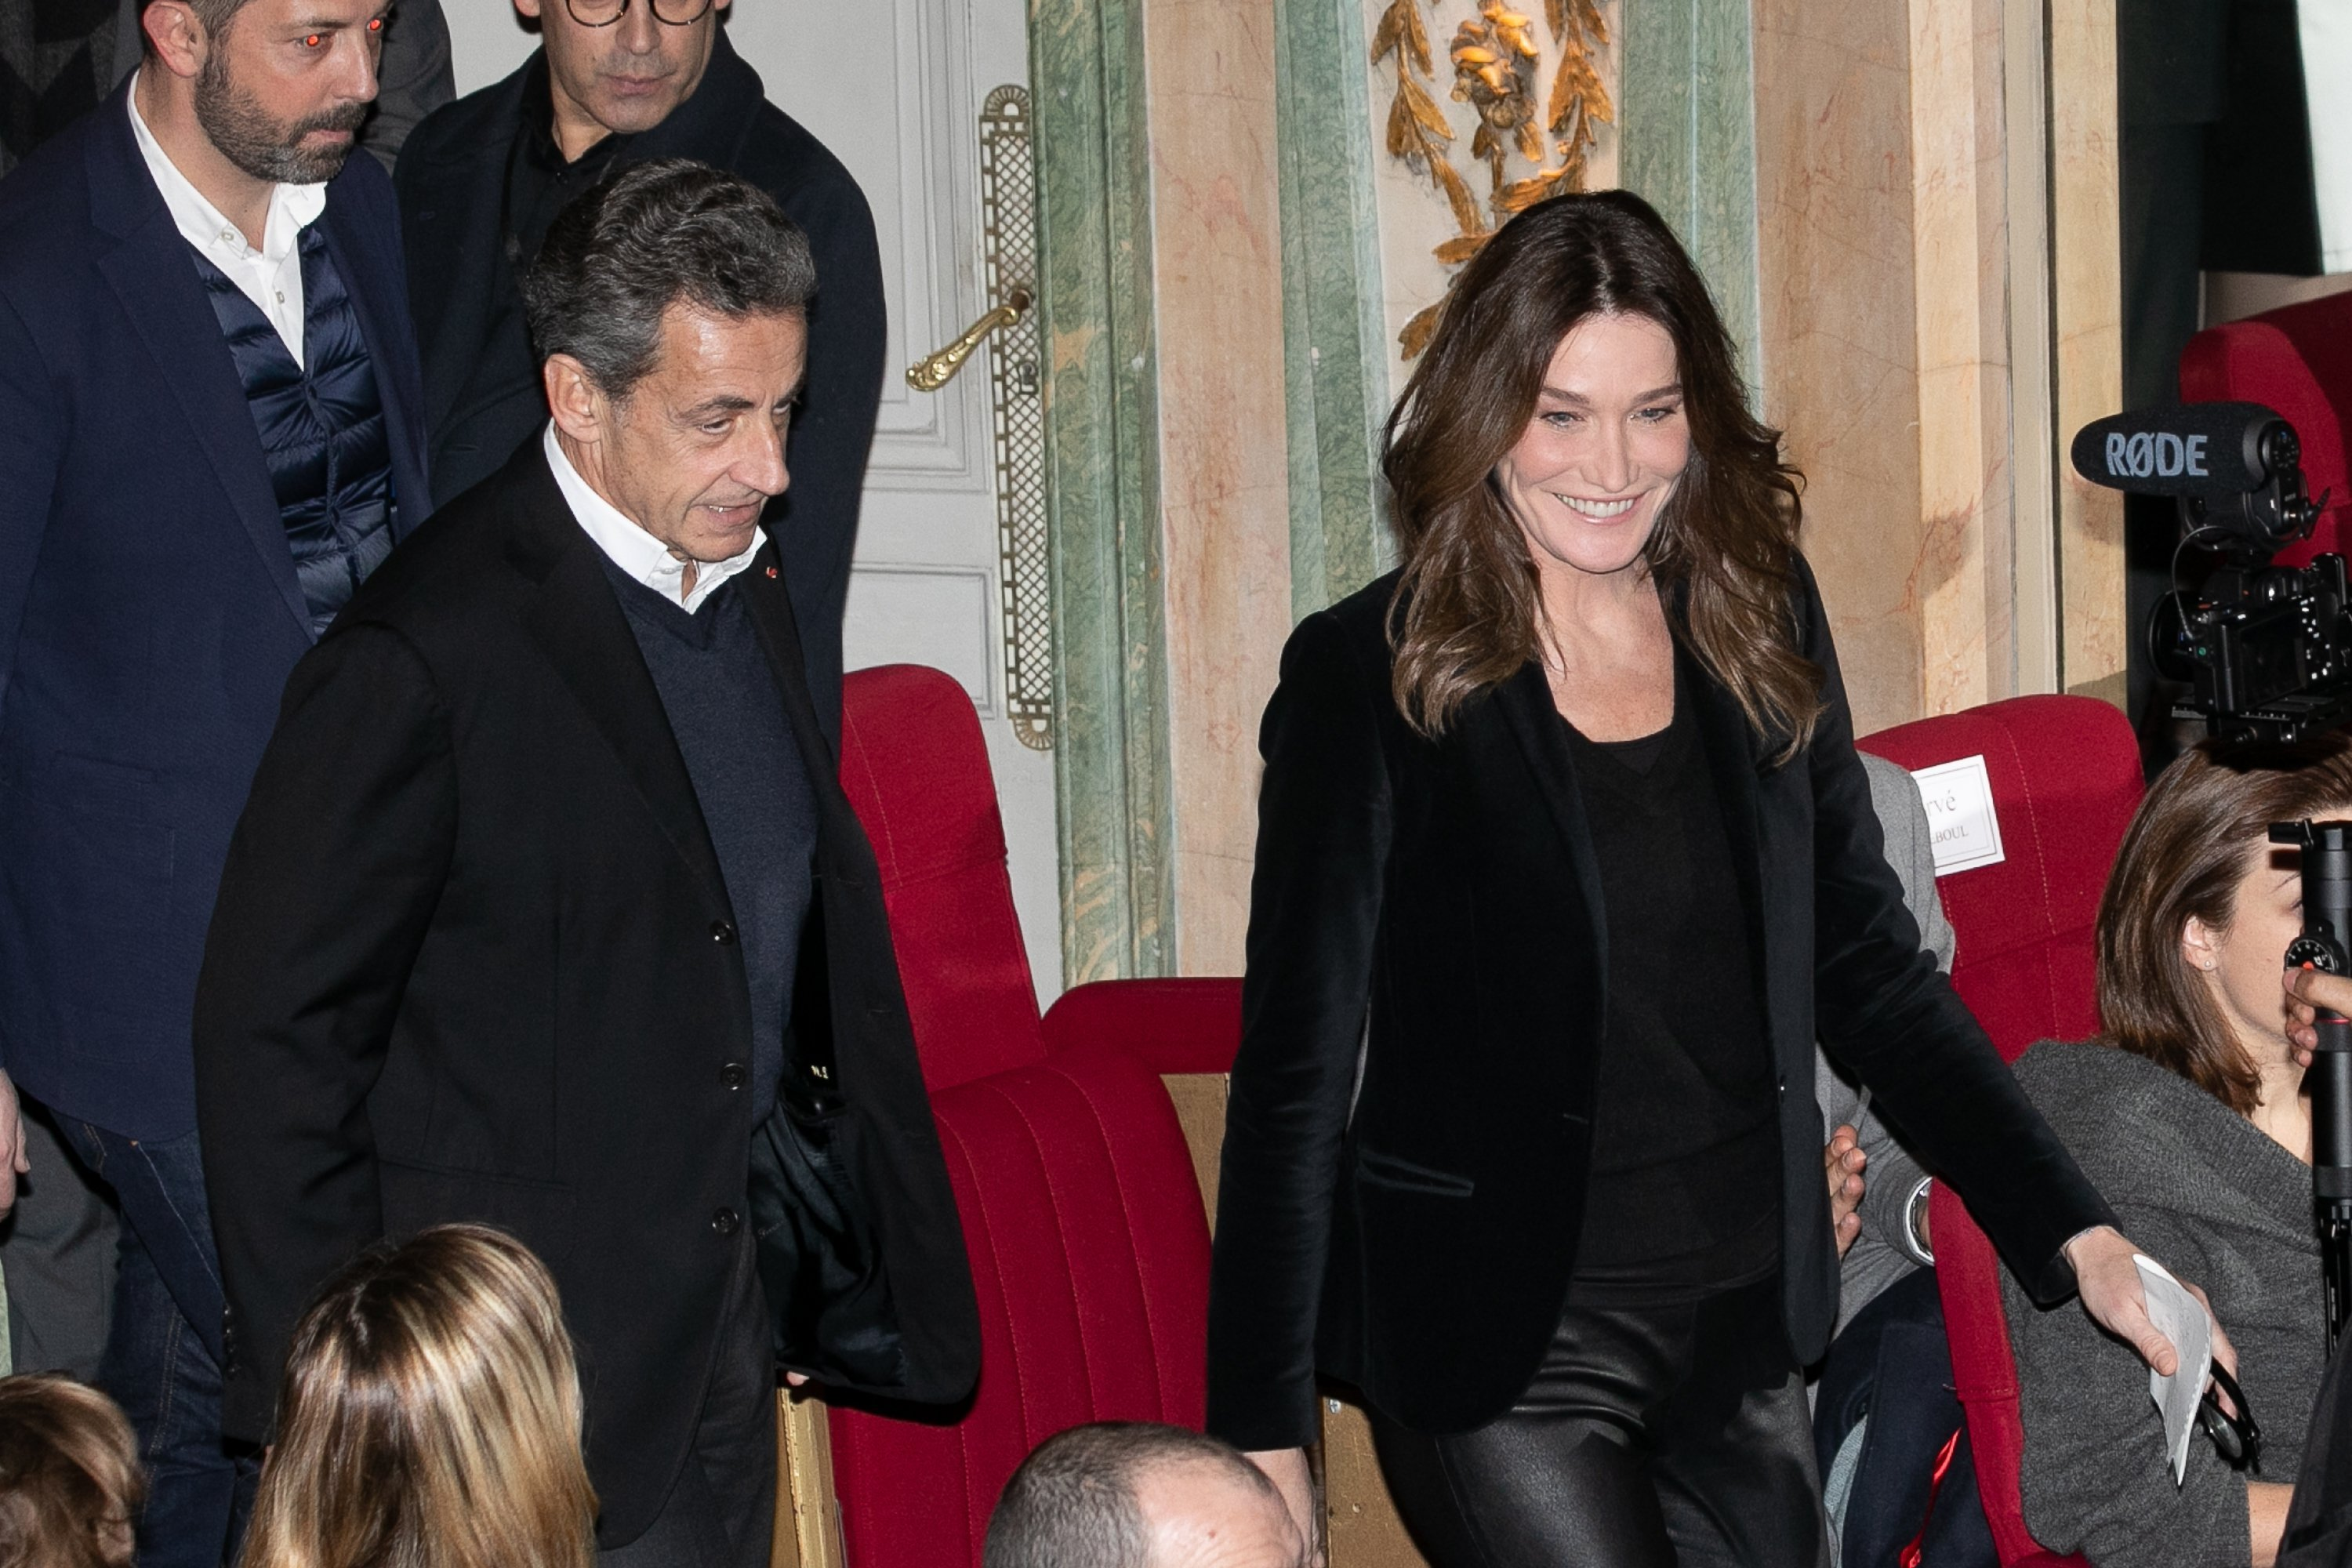 Nicolas Sarkozy et sa femme Carla Bruni Sarkozy au musée Grevin, à Paris, France | Photo : Getty Images